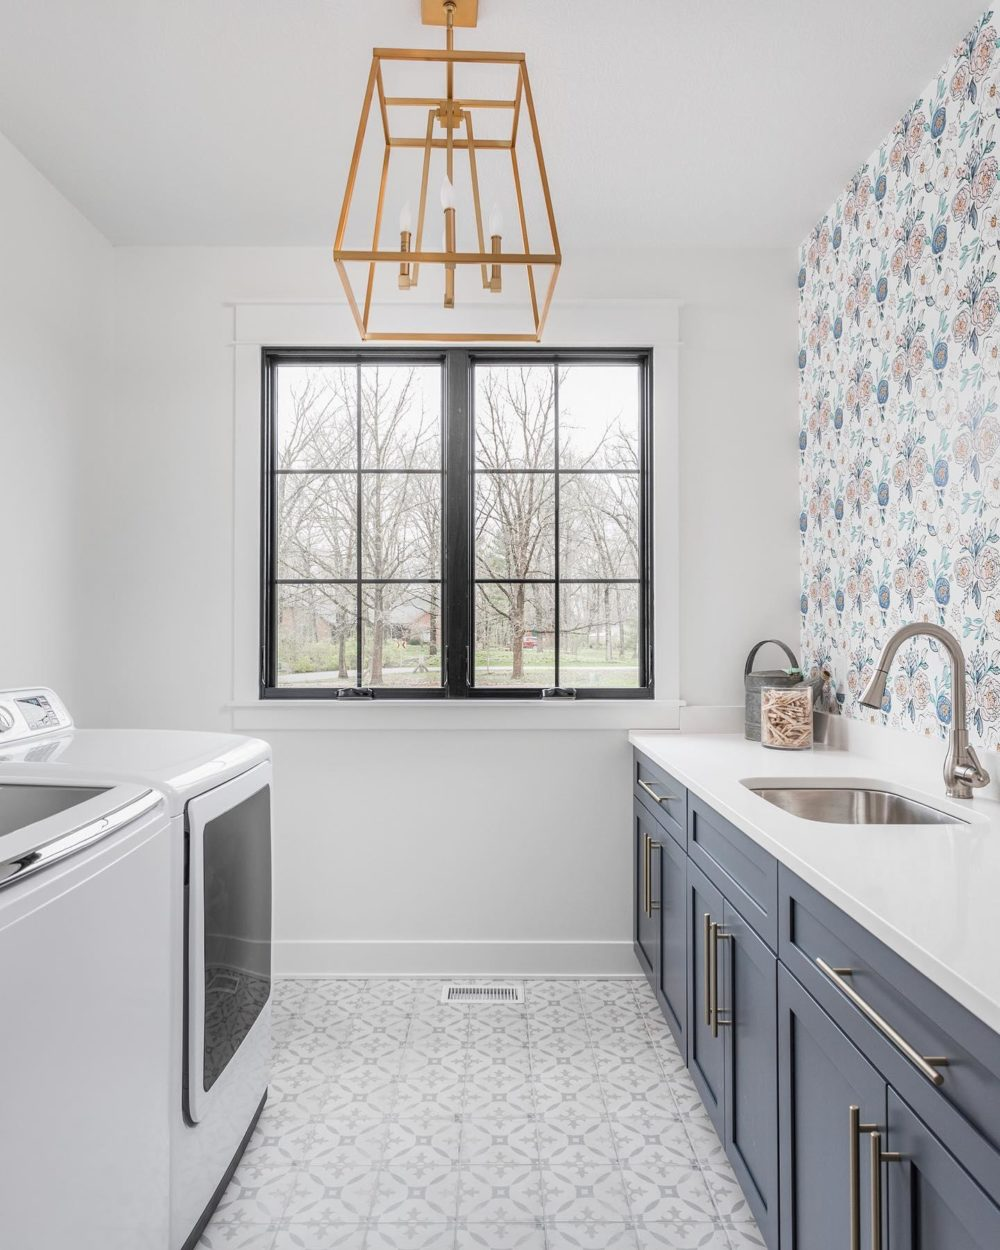 Patterned floor and wall laundry room